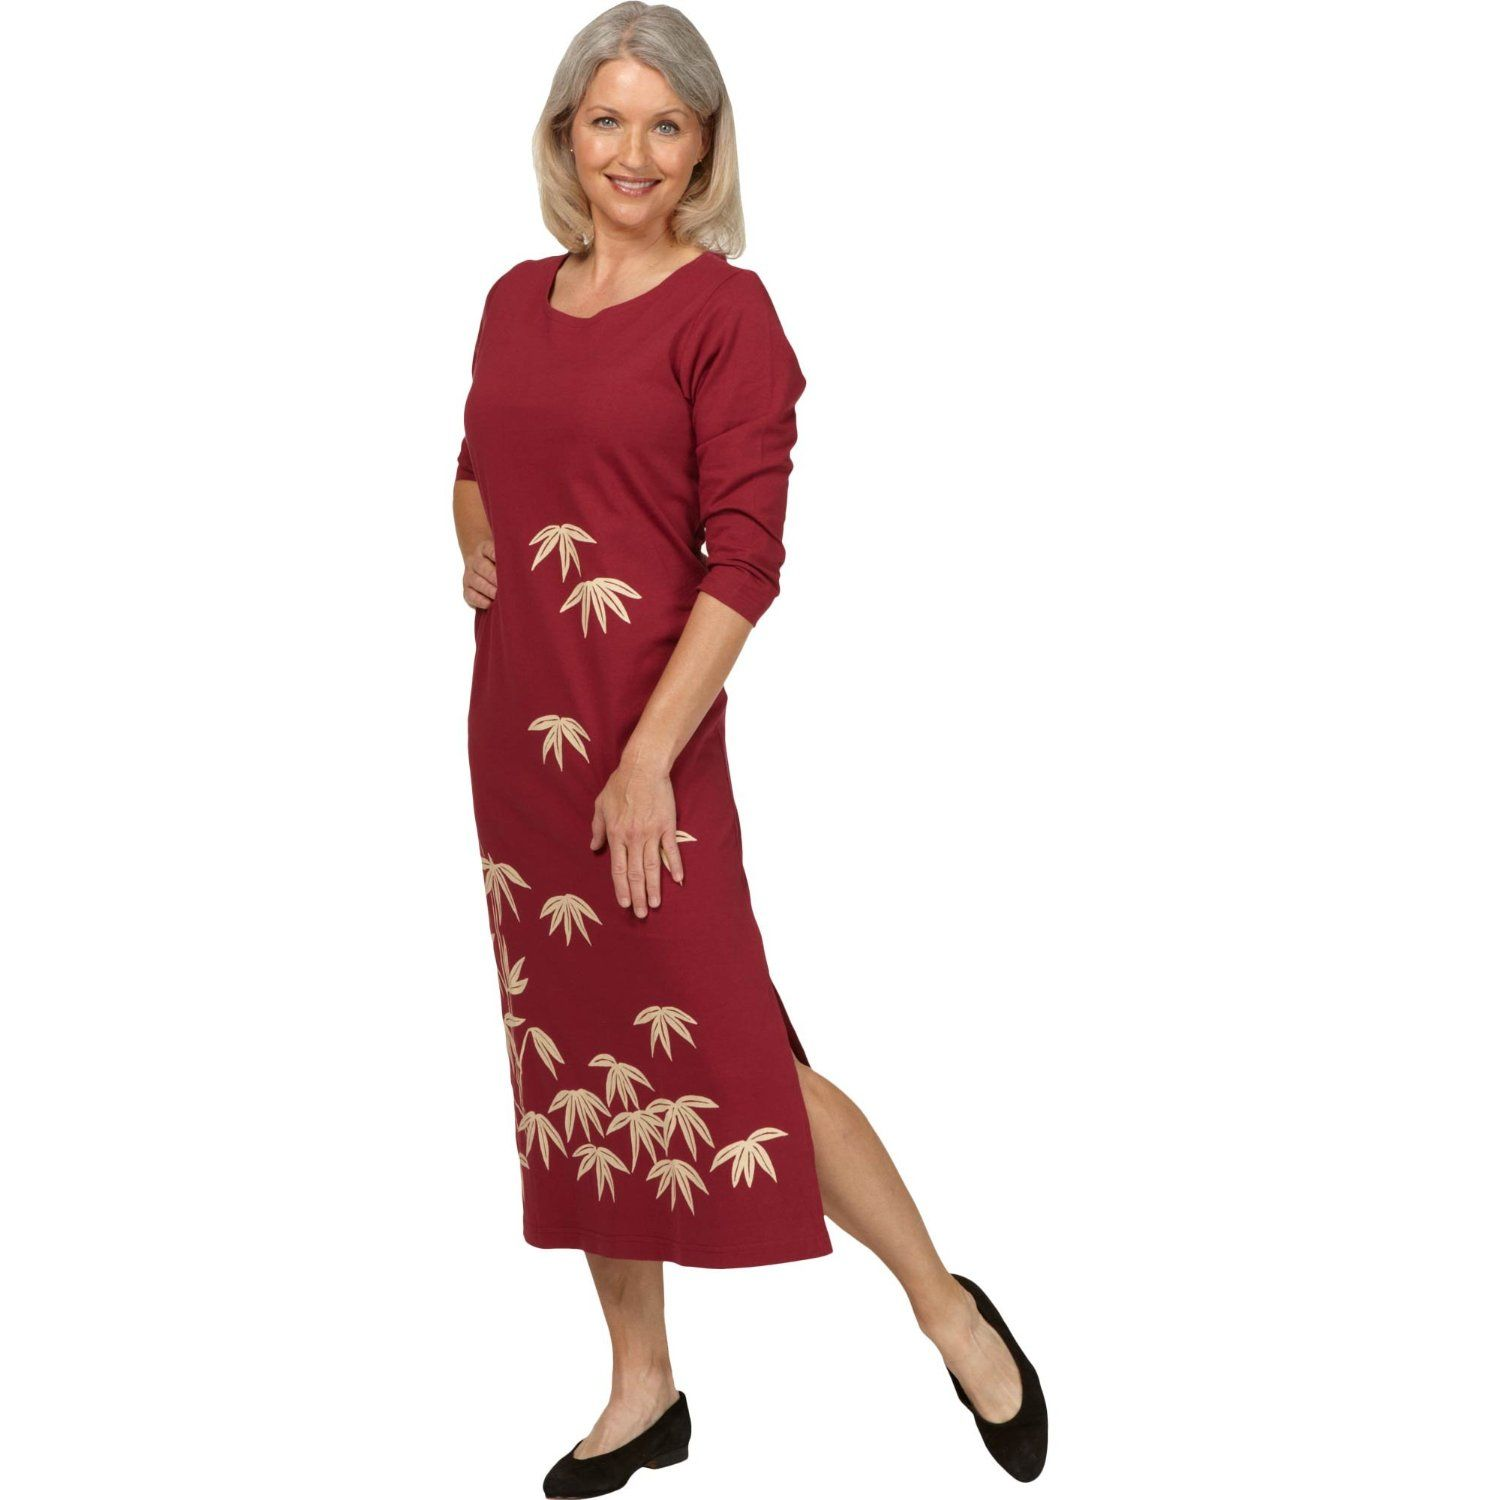 Summer Clothes for Women Over 50 | Bamboo Garden ¾ Length Sleeve ...